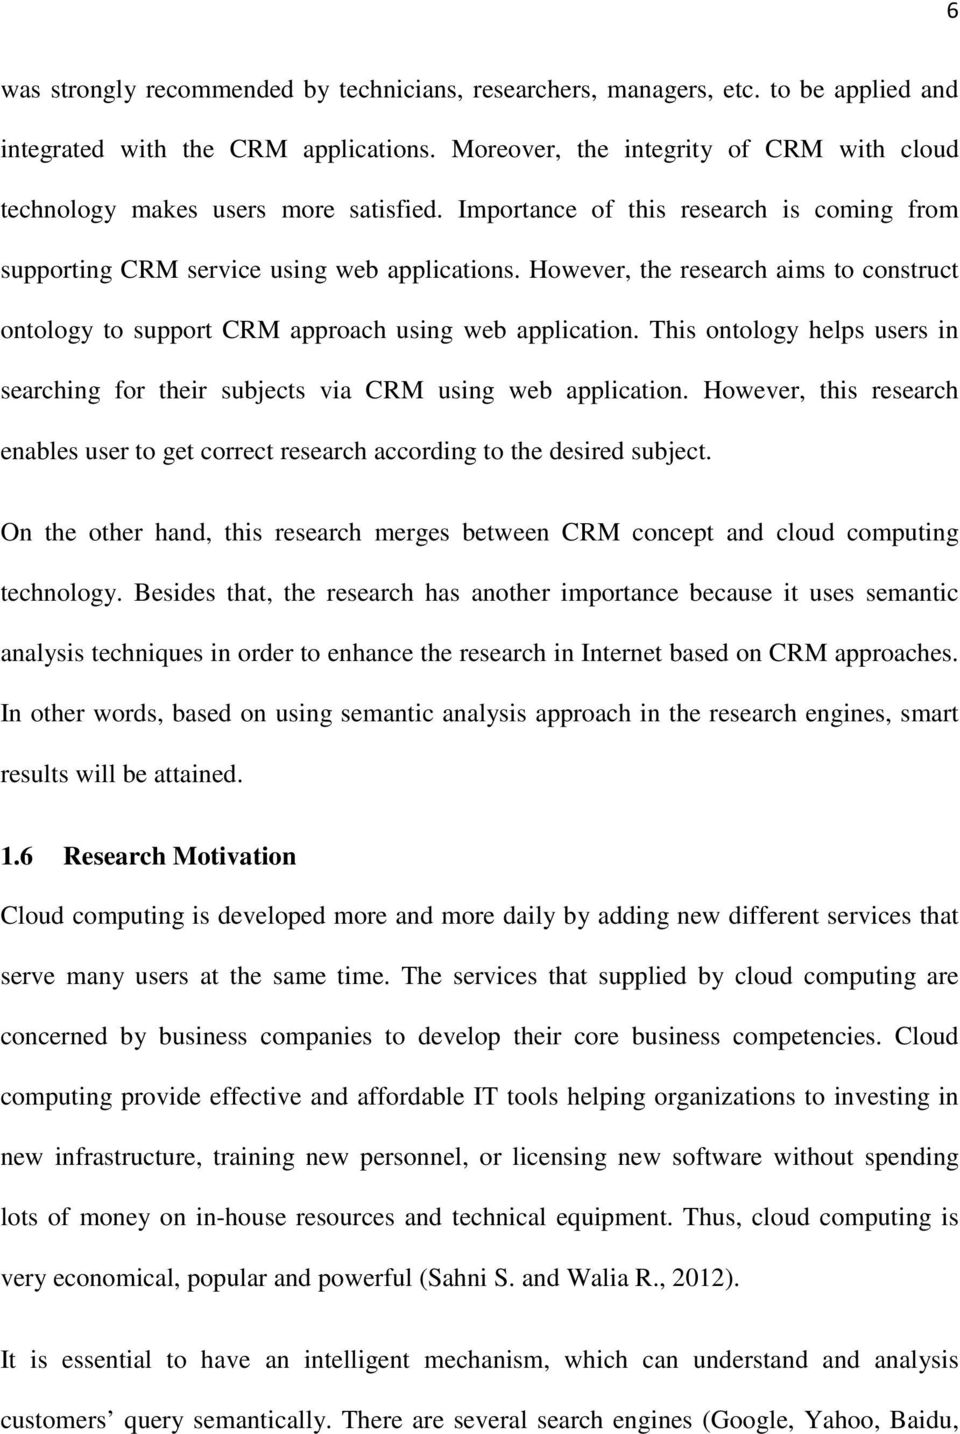 However, the research aims to construct ontology to support CRM approach using web application. This ontology helps users in searching for their subjects via CRM using web application.